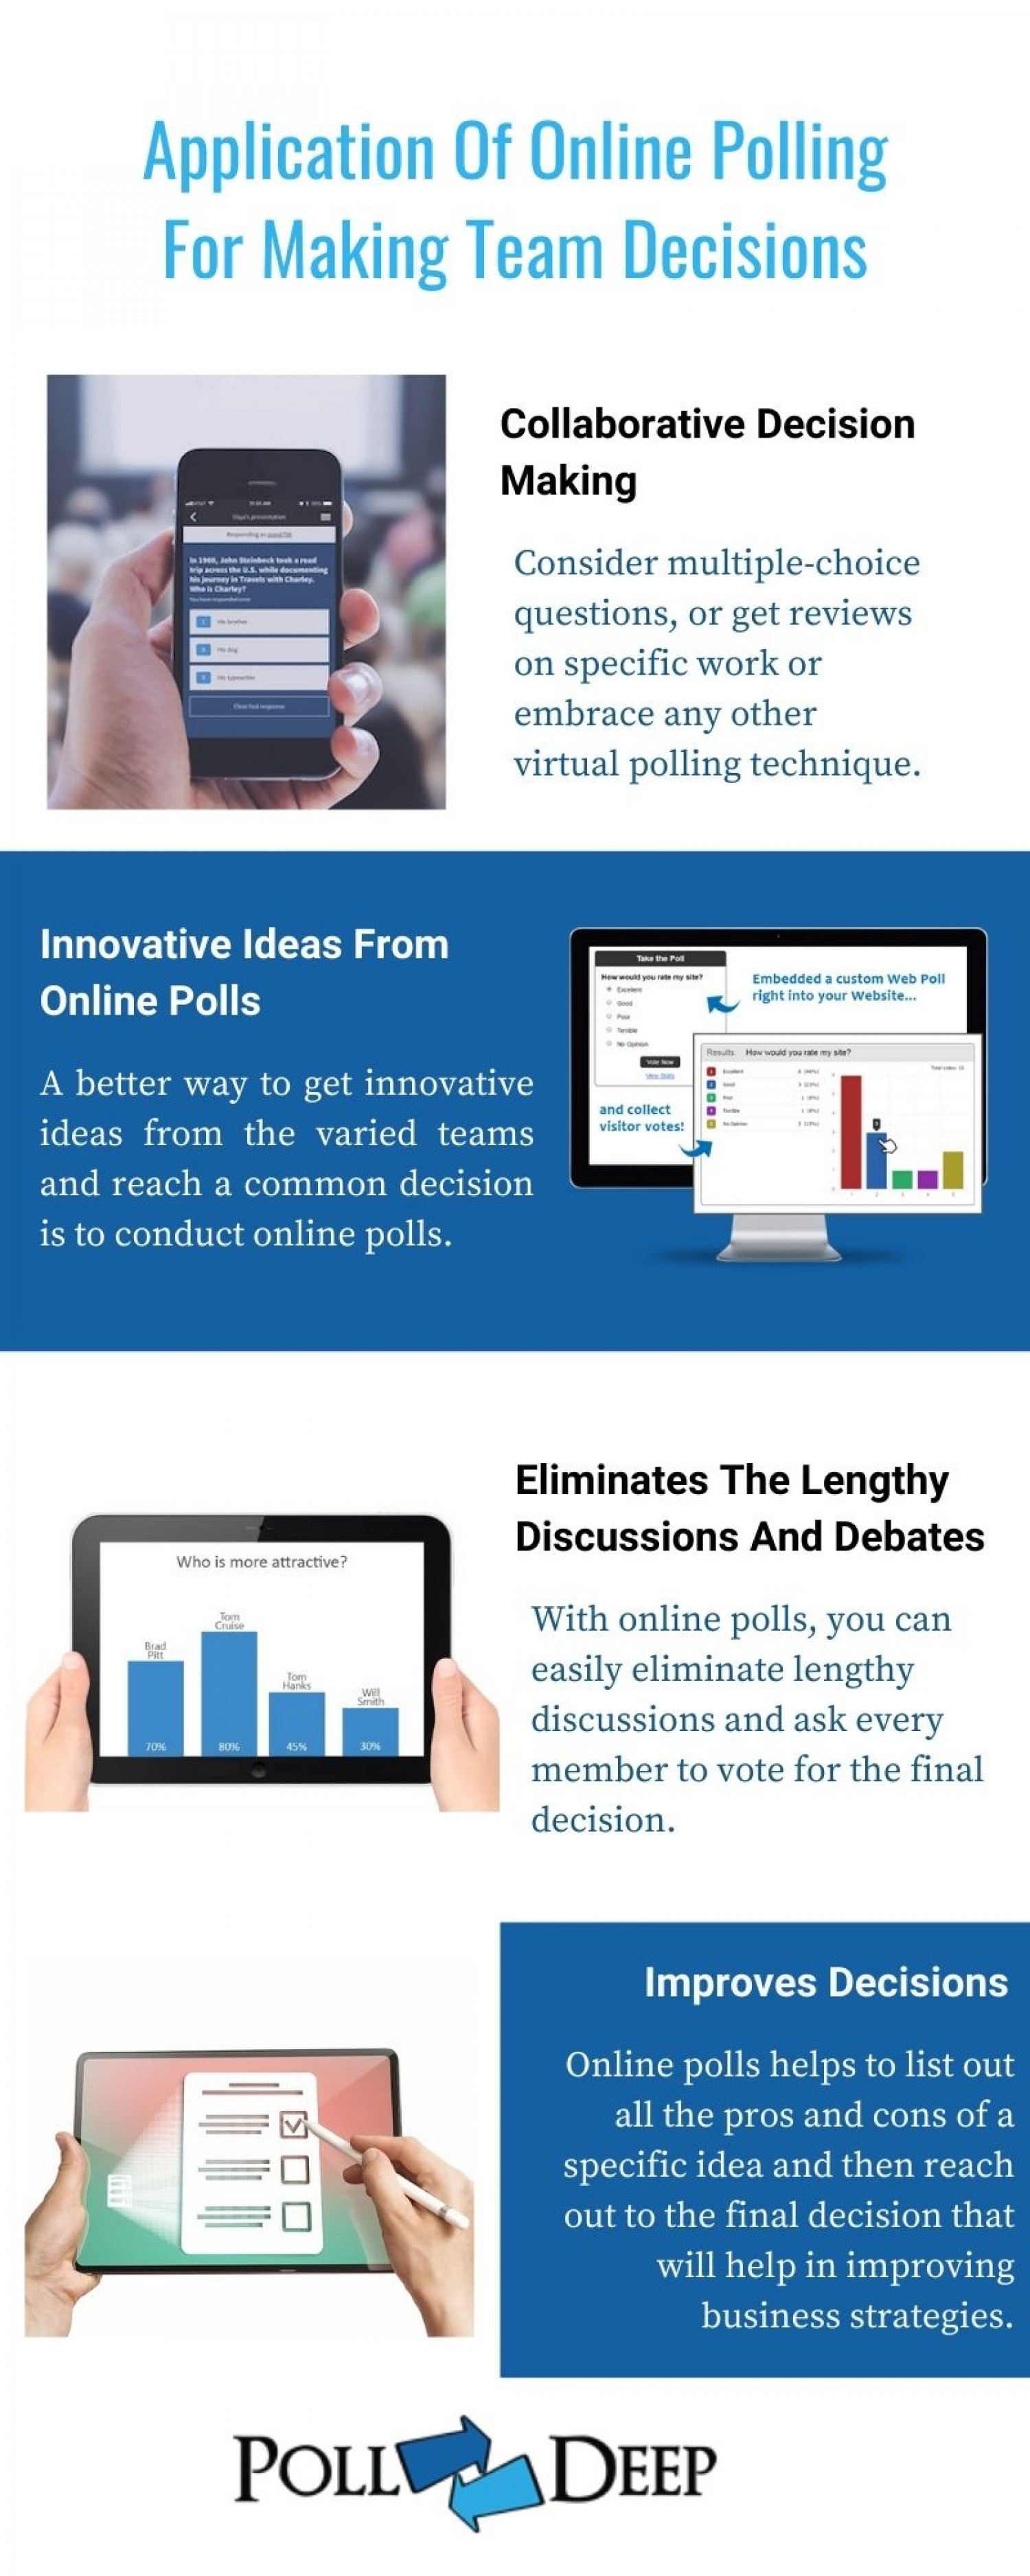 Application Of Online Polling For Making Team Decisions Infographic